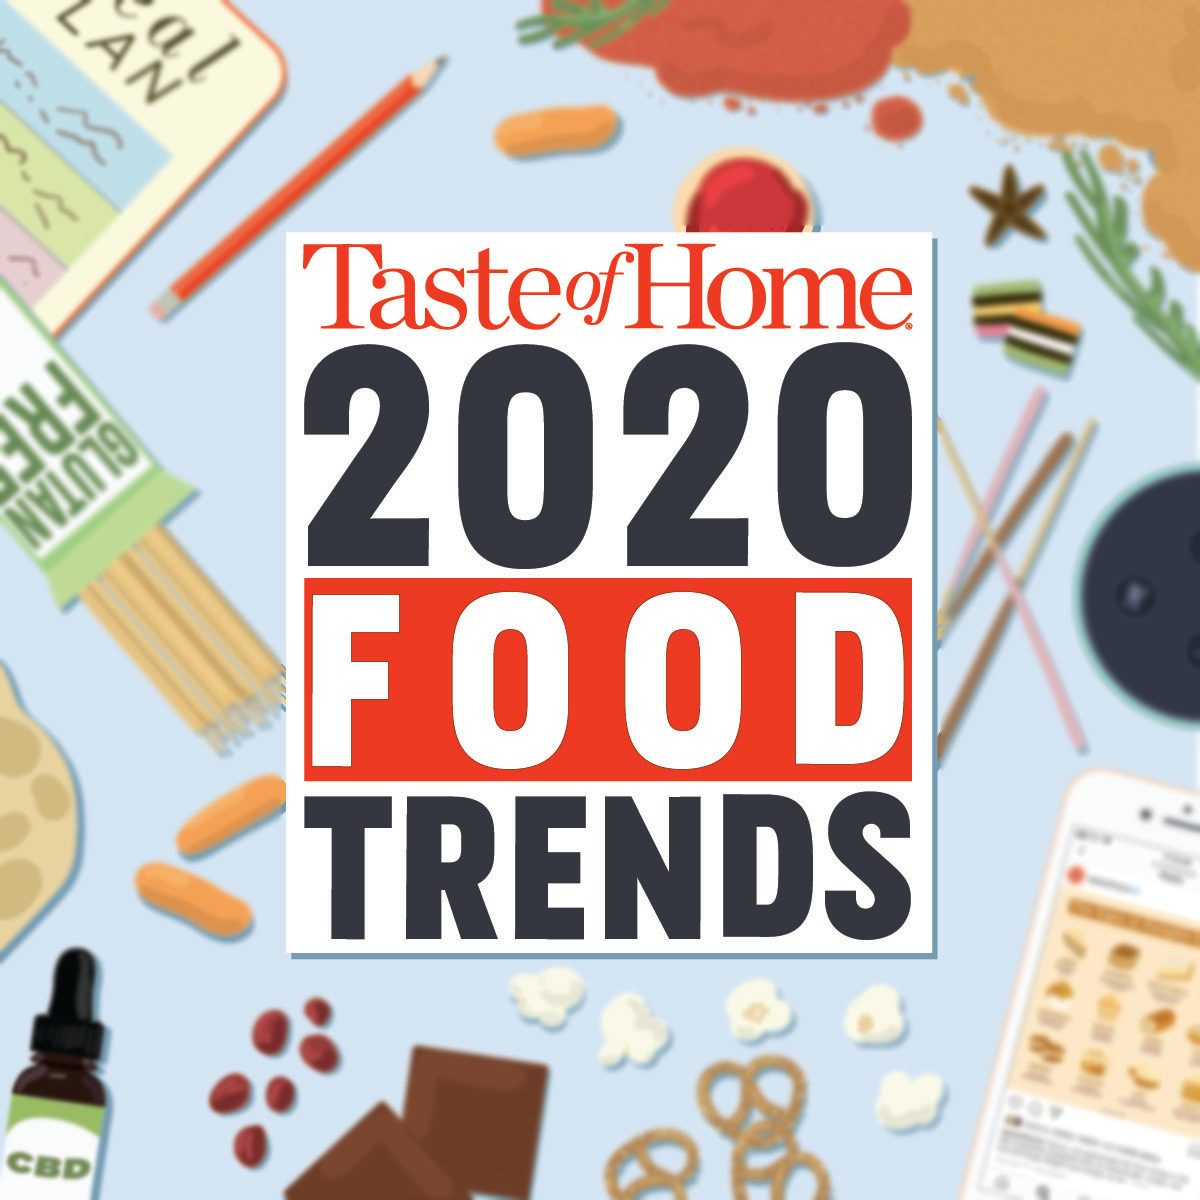 Taste of Home's 2020 Food Trends graphic on illustrated background of food